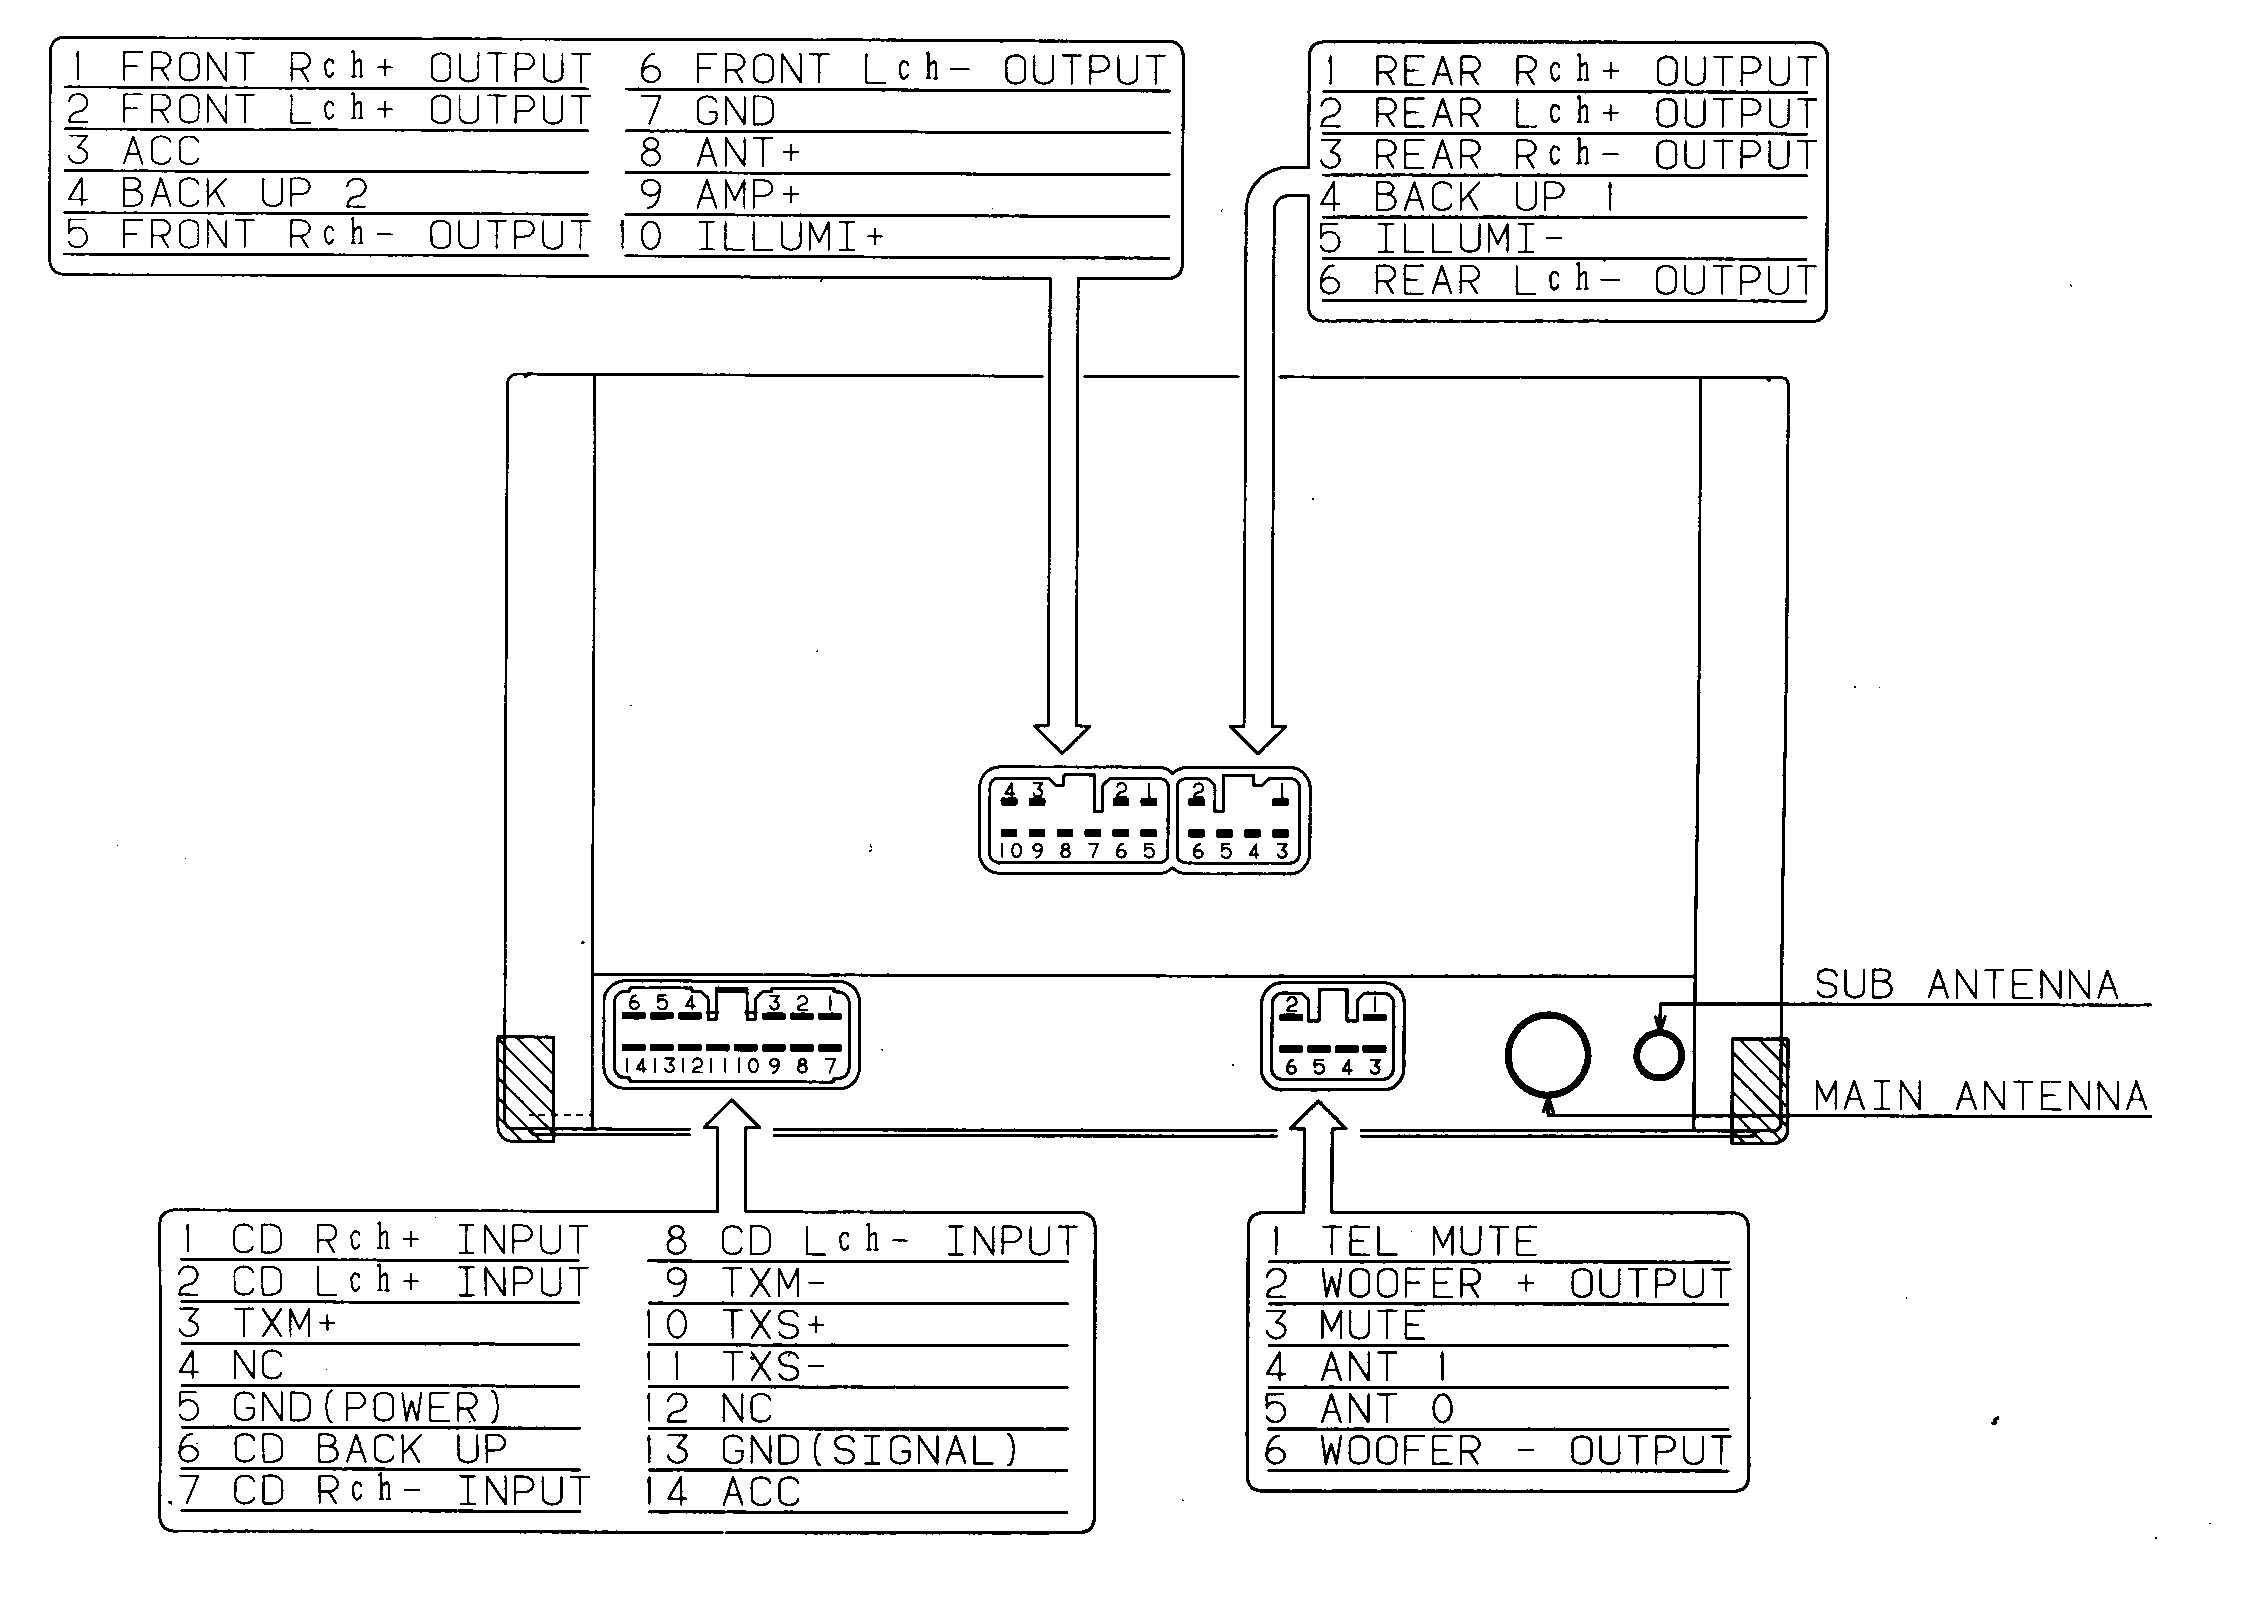 98 Lexus Gs300 Wiring Diagram - Wiring Diagrams DataUssel